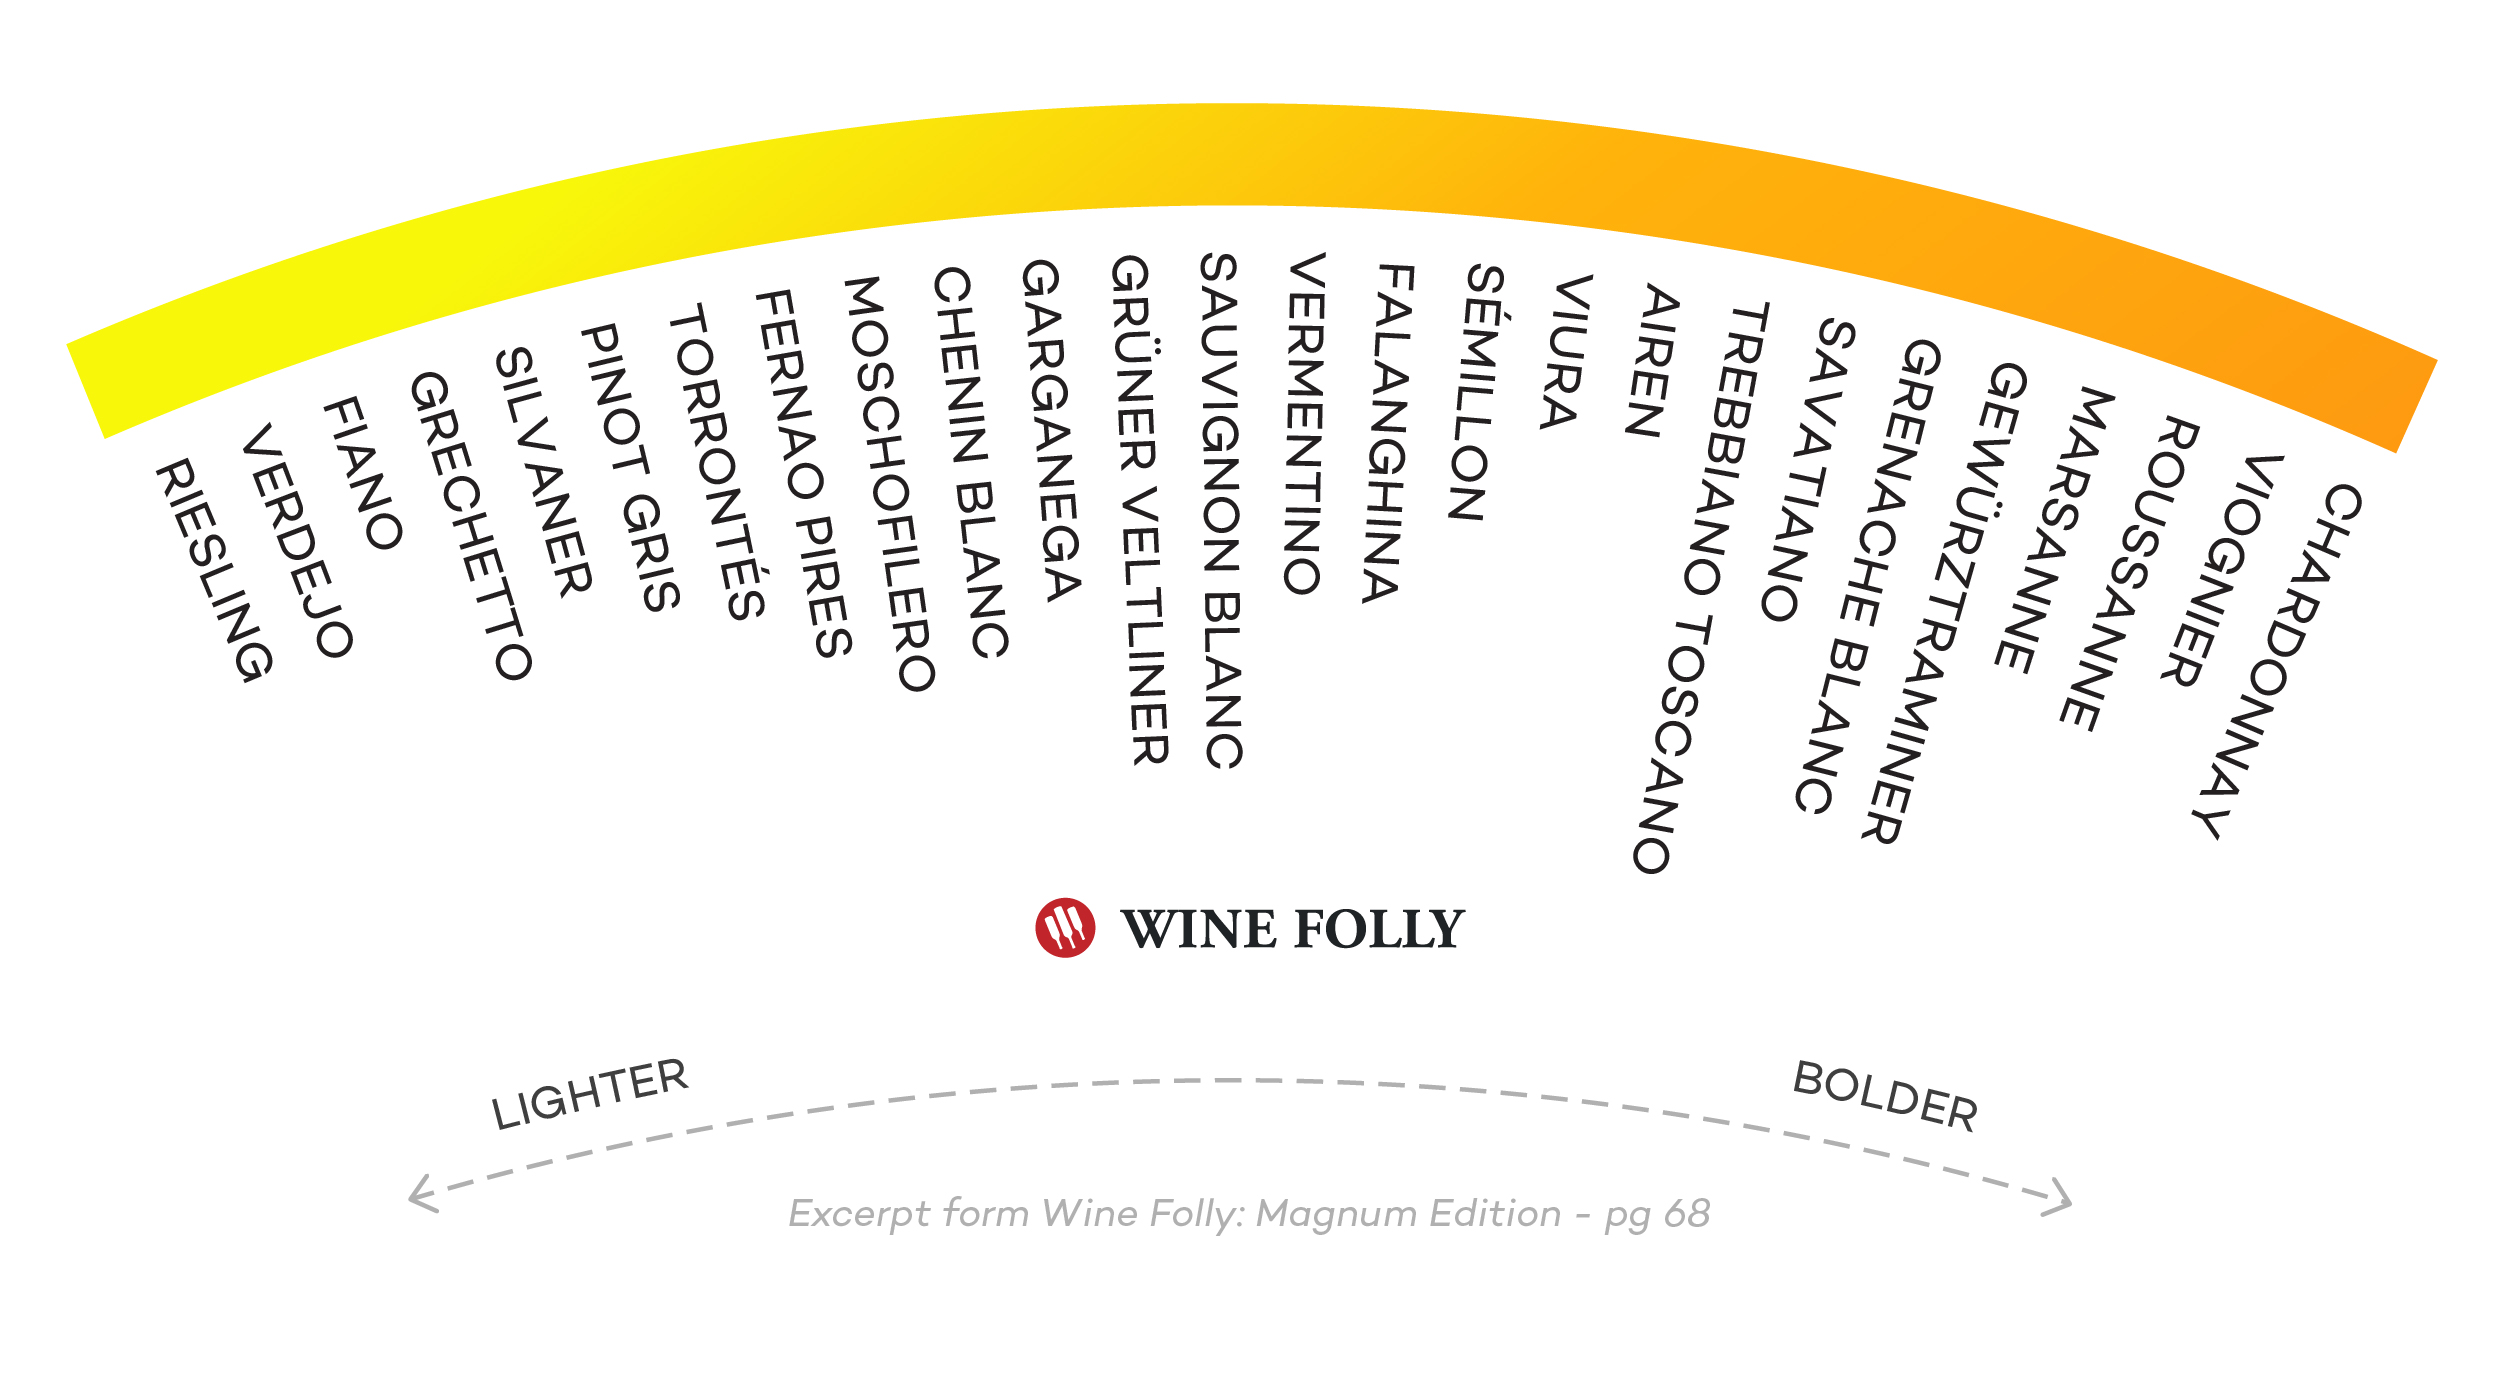 Different types of white wines organized by Body - infographic by Wine Folly